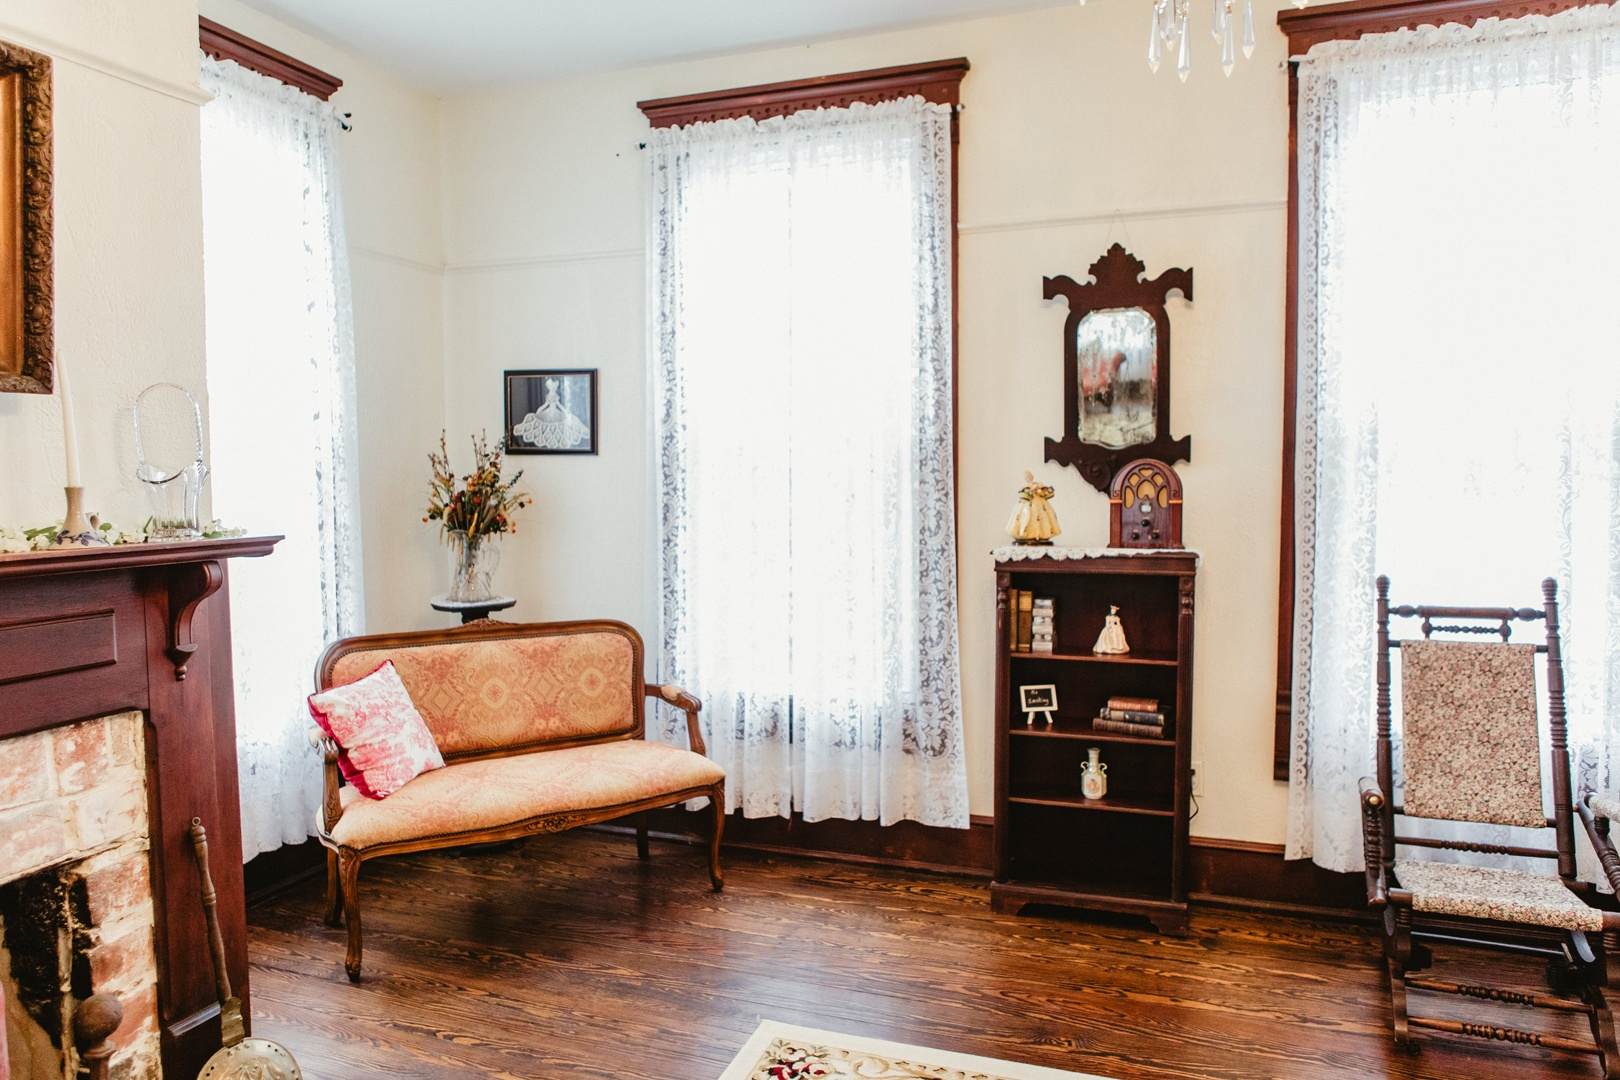 A Victorian style chair sits in the corner surround by tall windows draped in delicate white lace.